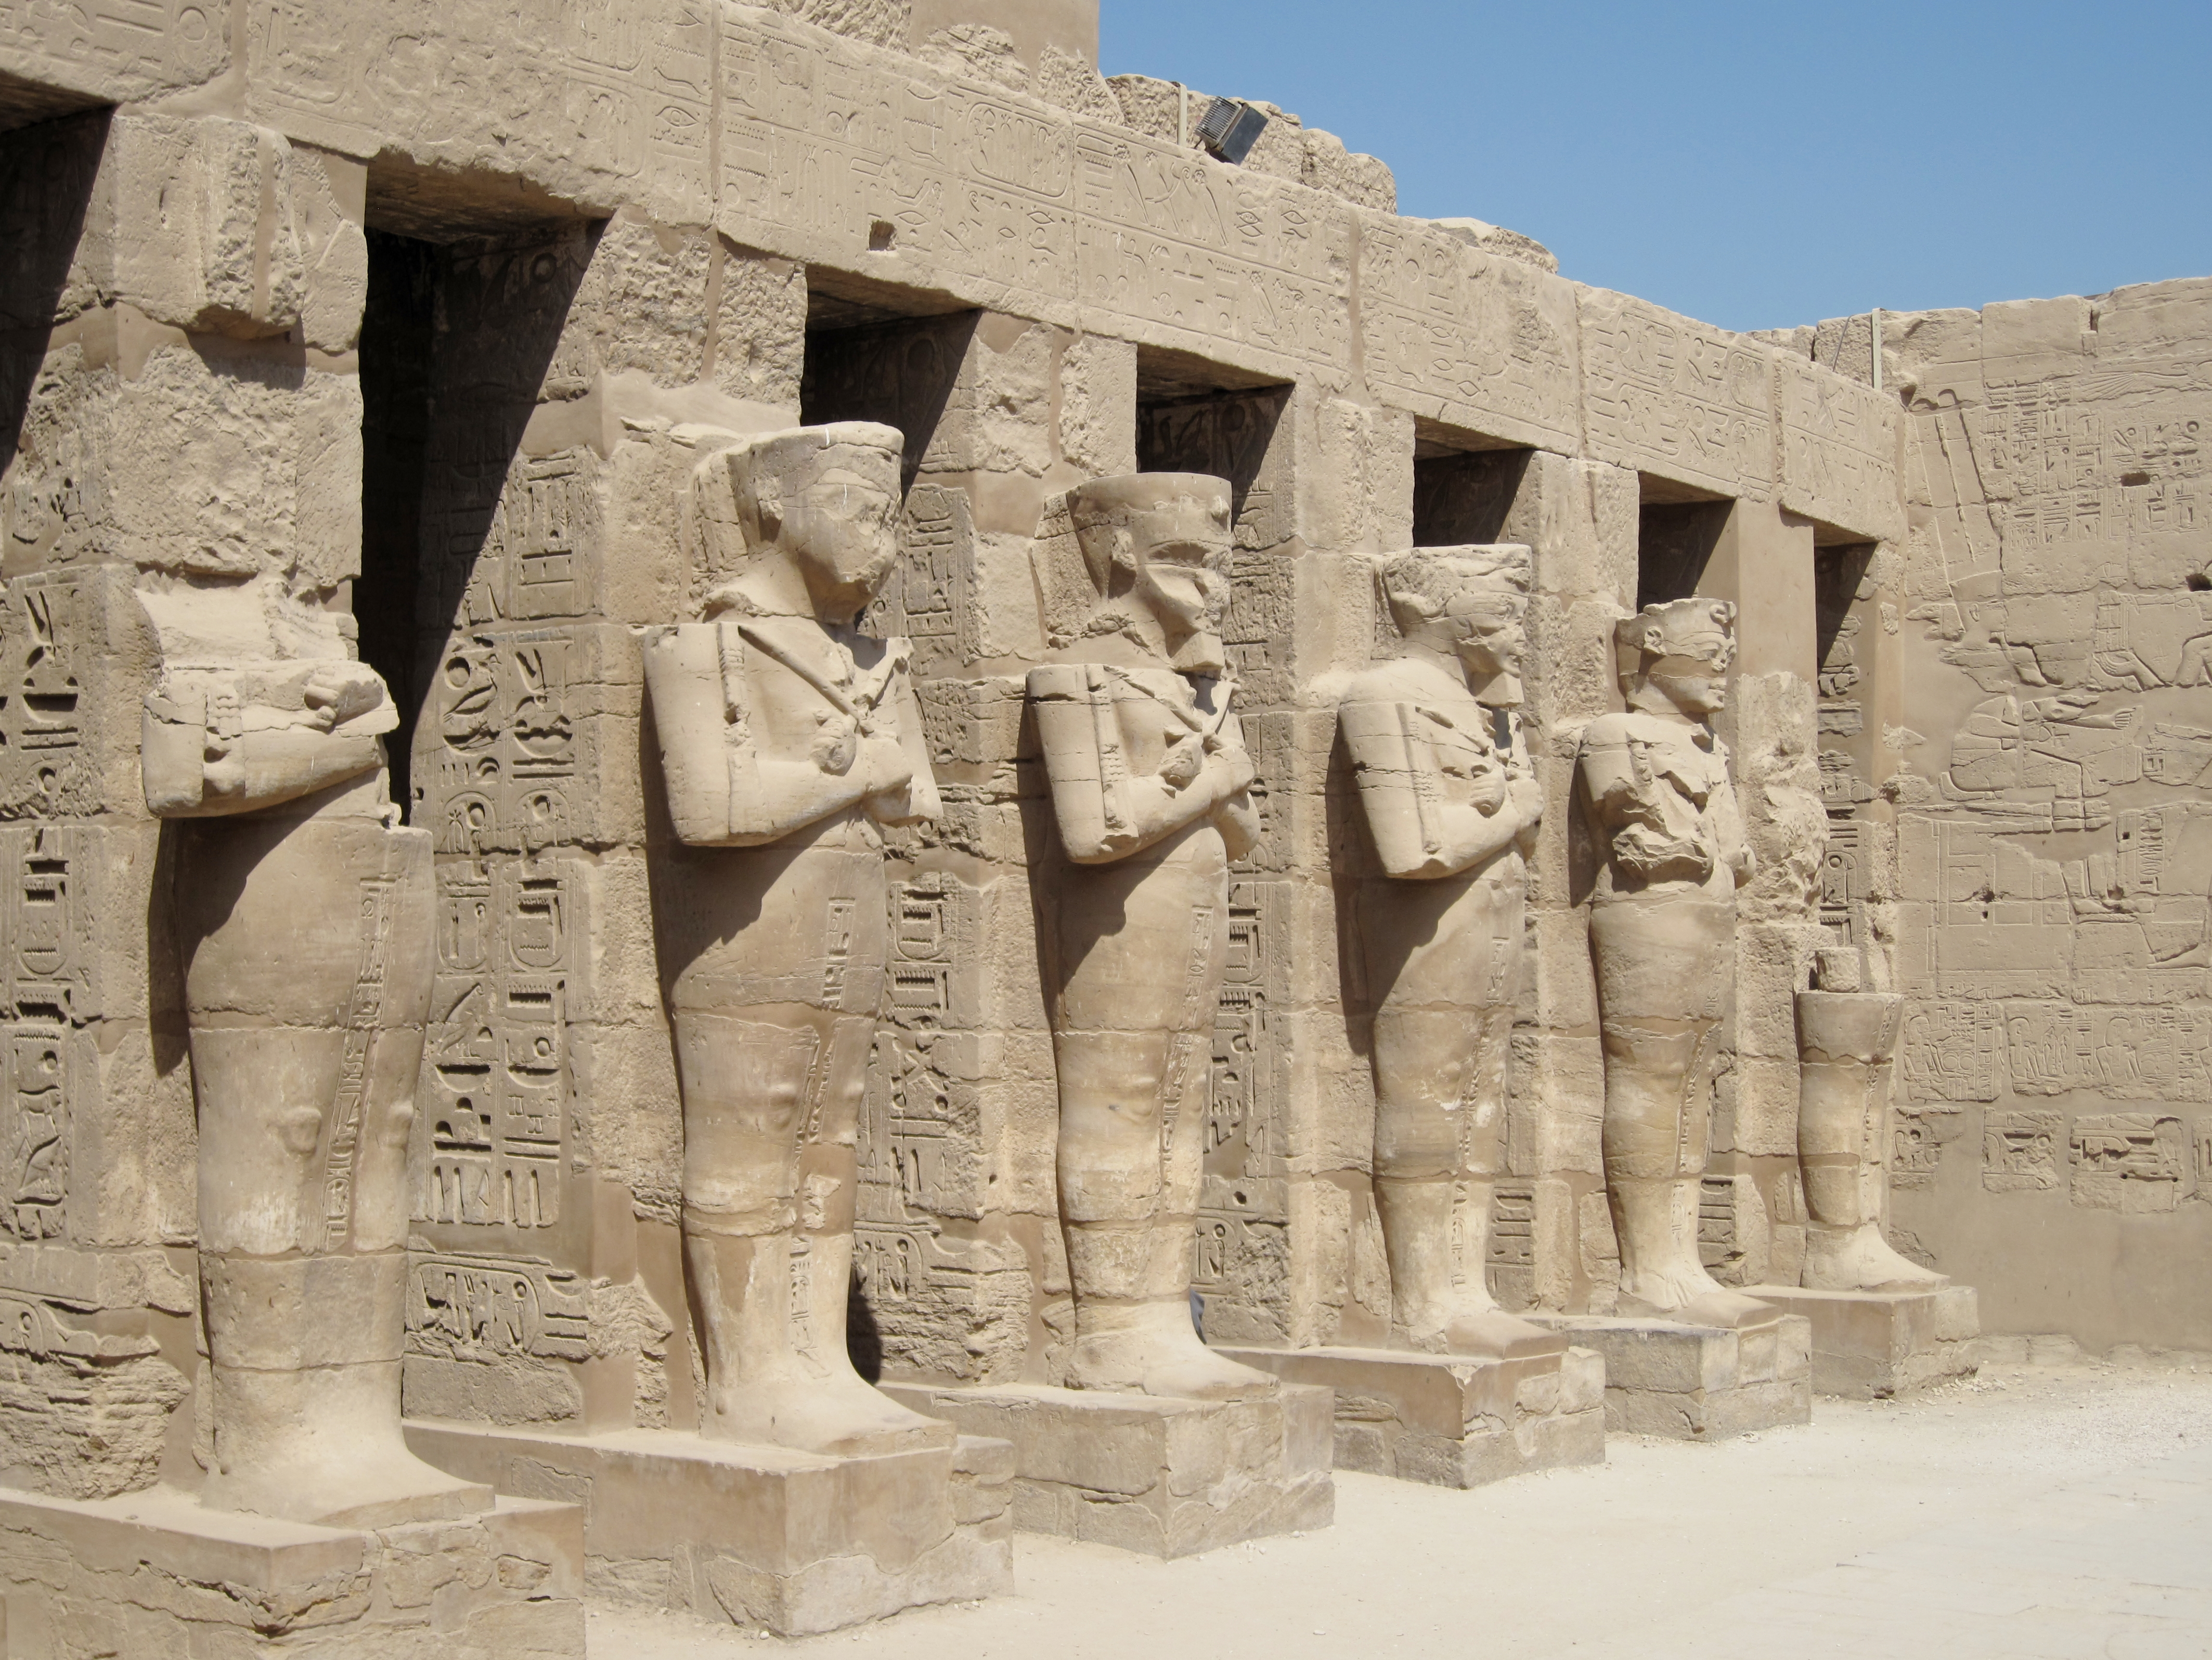 ramses ii accomplishments essay A diagram to show the major accomplishments of ramses ii ramses c 2050 bc middle kingdom begins c 1500 bc queen hatshepsut reigns c 1279 bc ramses ii takes the throne n ile r memphis thebes 2400 bc 1600 bc 800 bc 2400 bc 1600 bc 800 bc 178 chapter 2 • ancient egypt and kush.